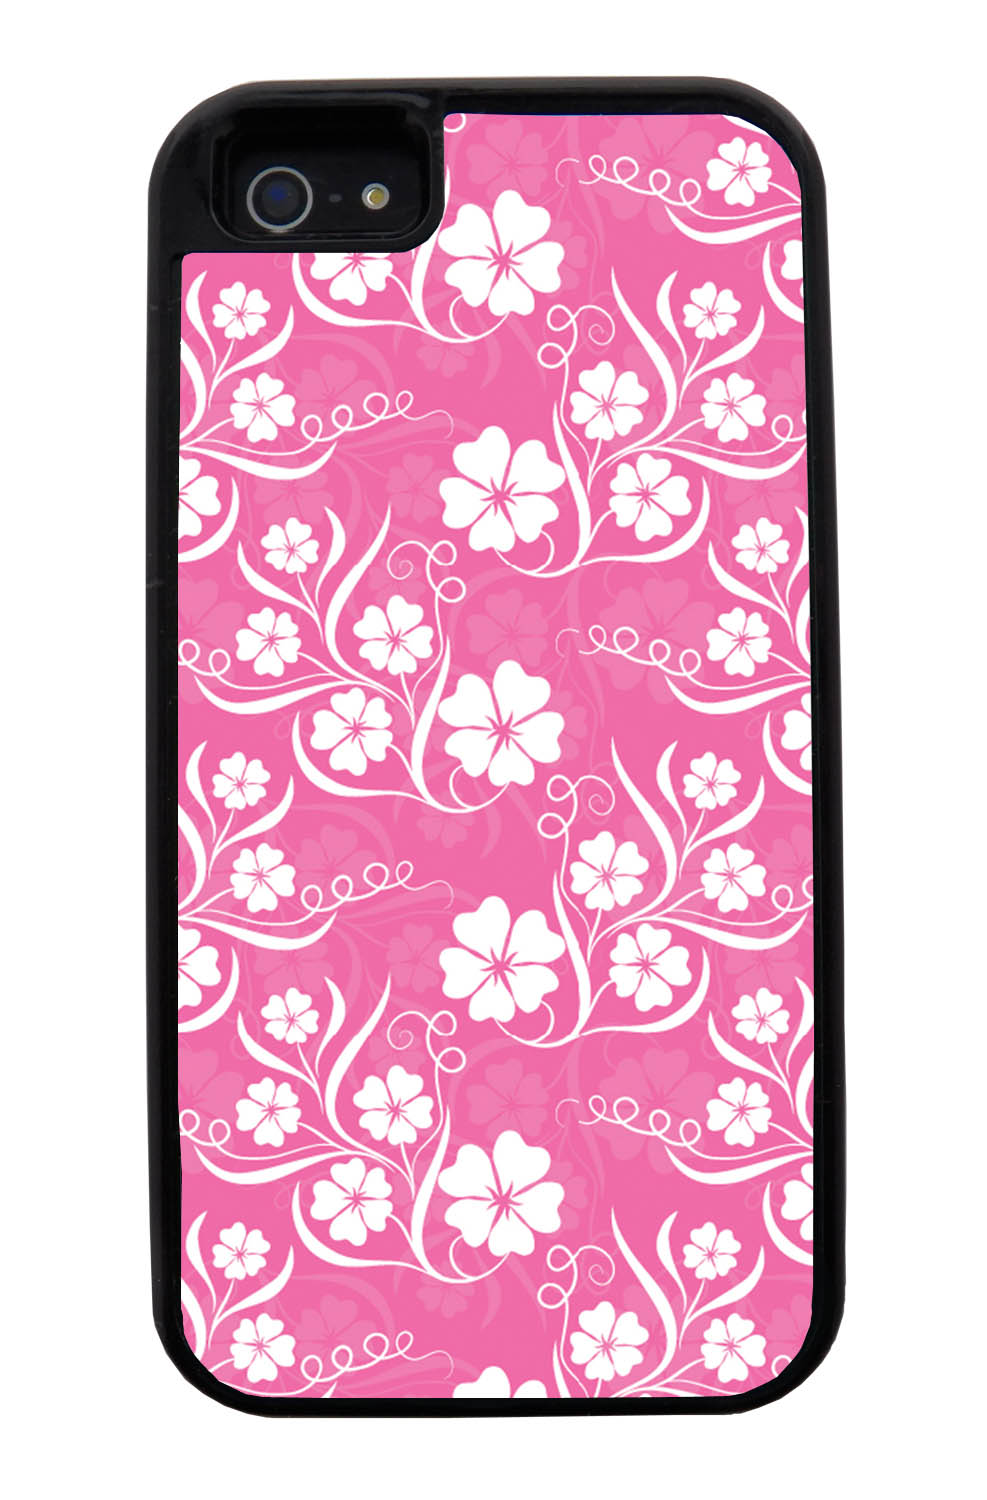 Apple iPhone 5 / 5S Flower Case - White on Pink - Stencil Cutout - Black Tough Hybrid Case